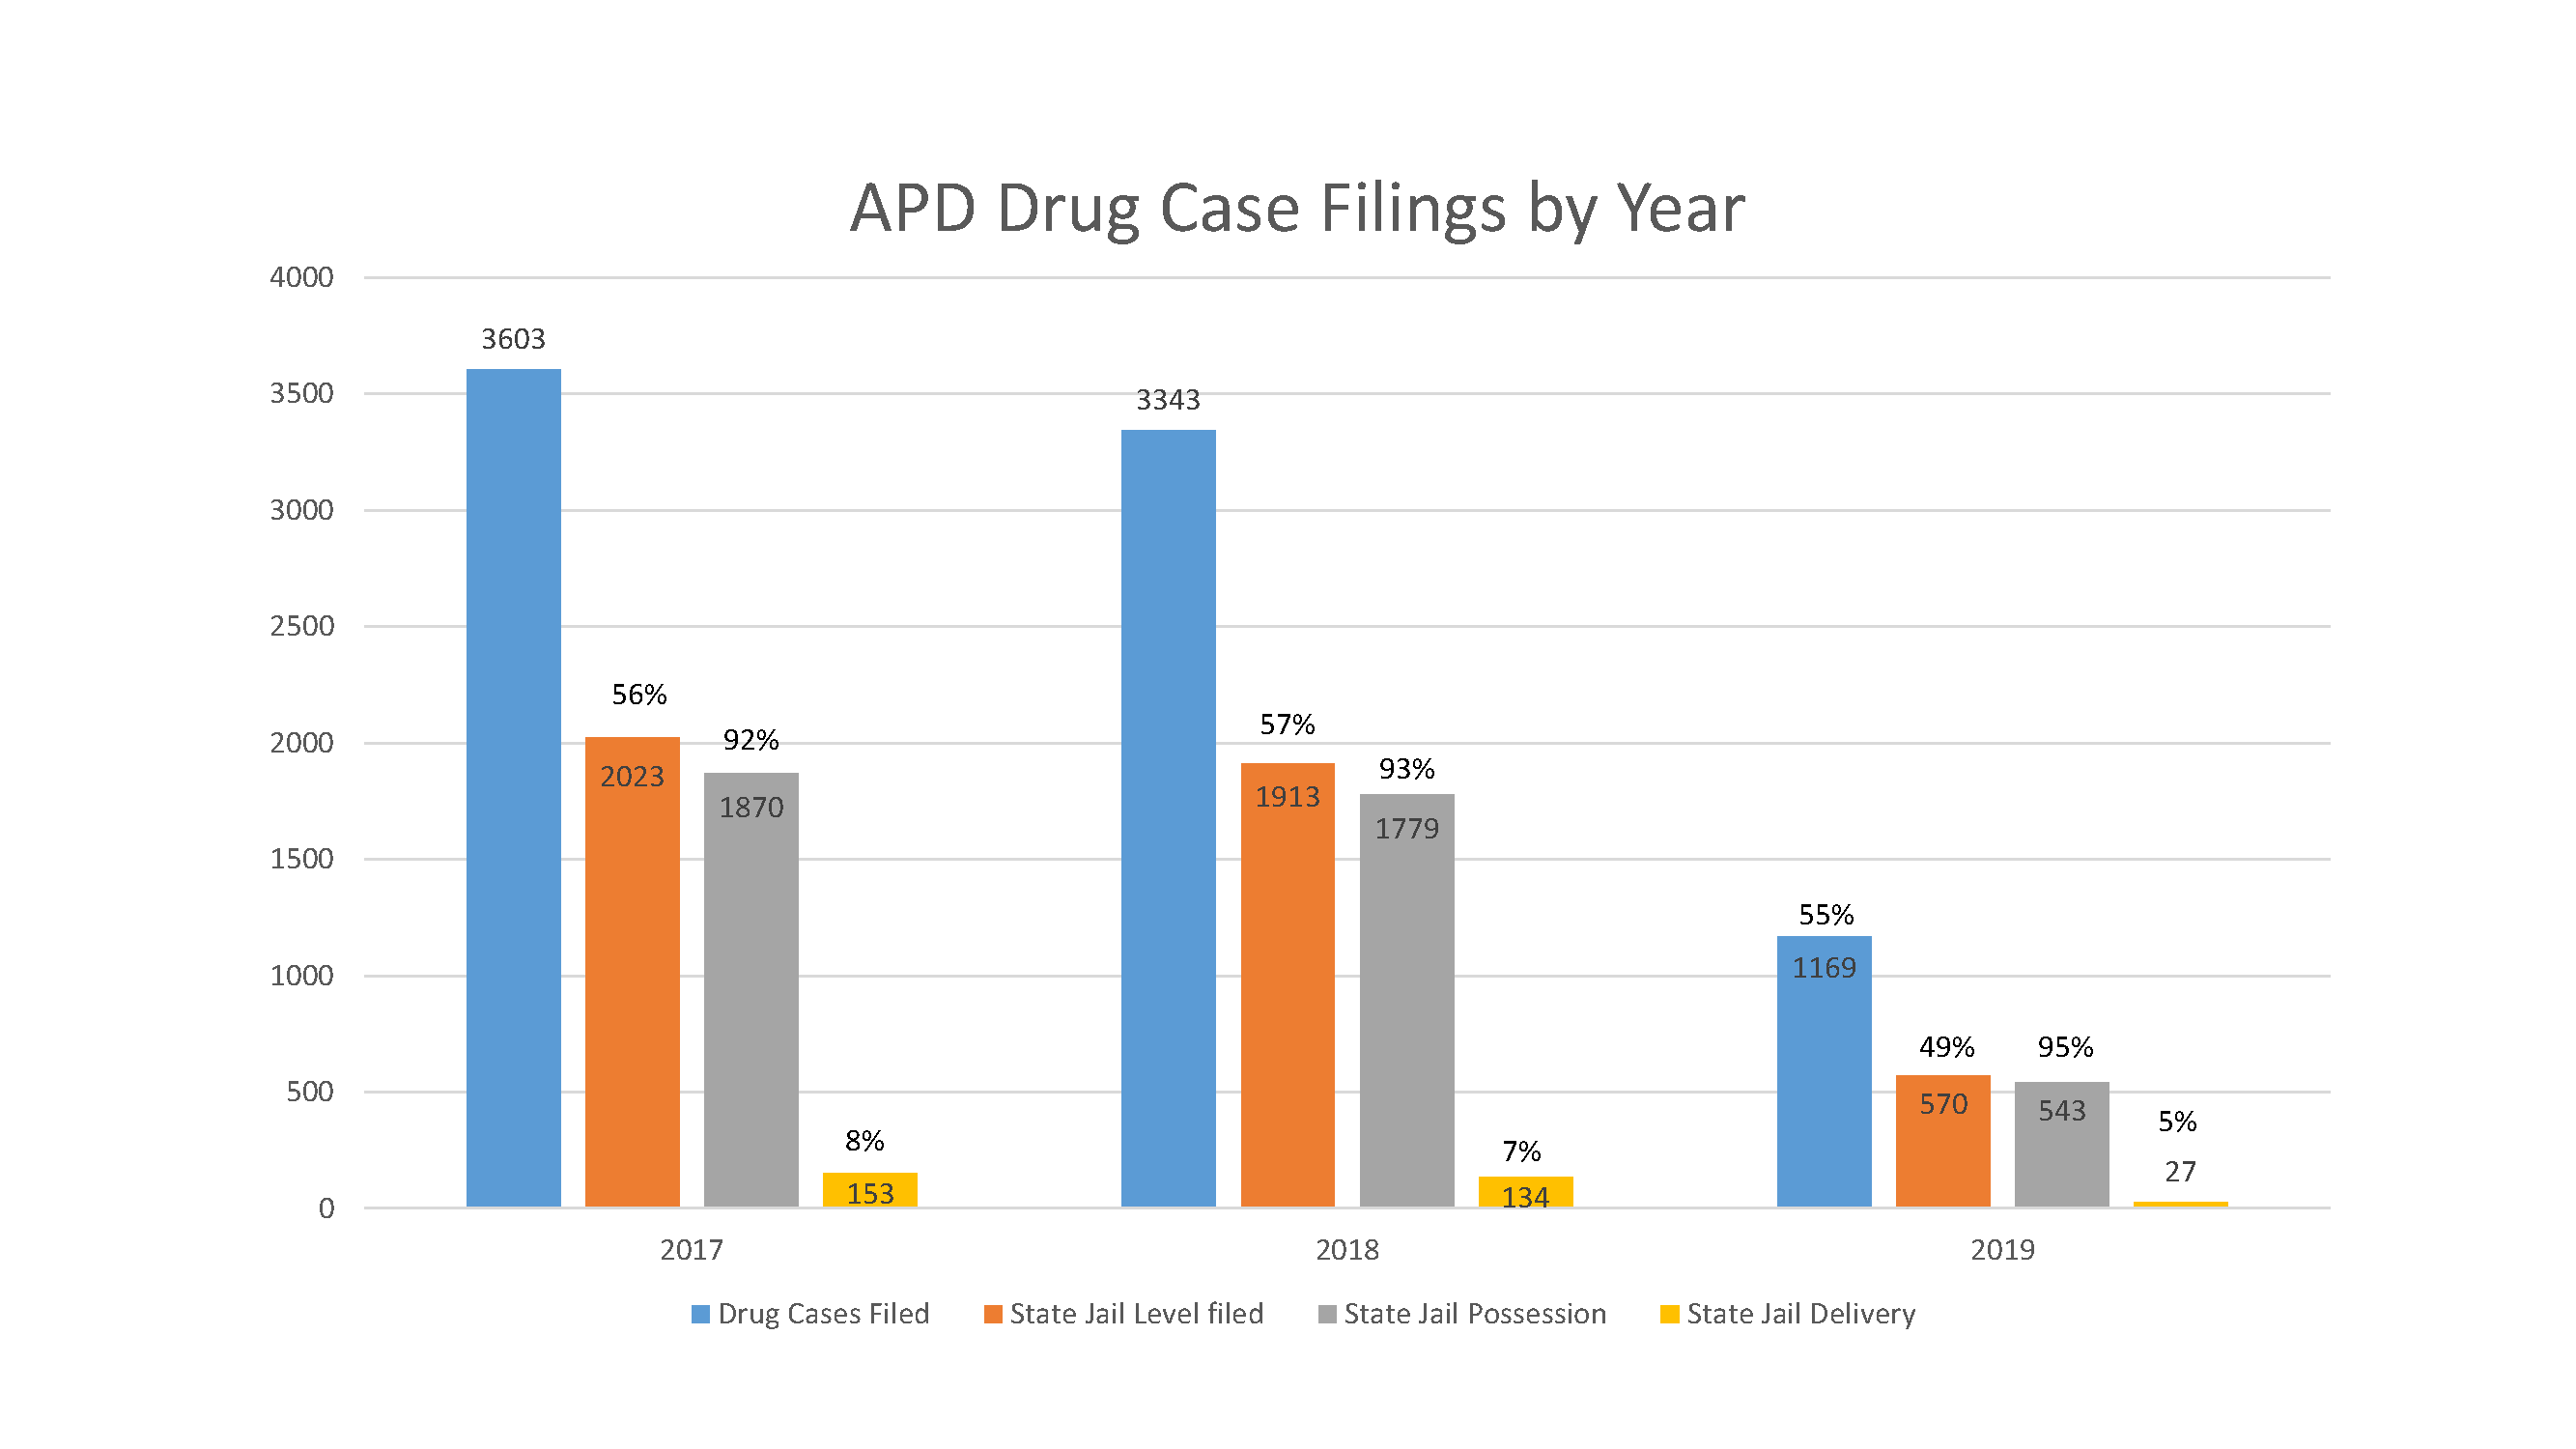 refer to table 10: apd drug case filings by year